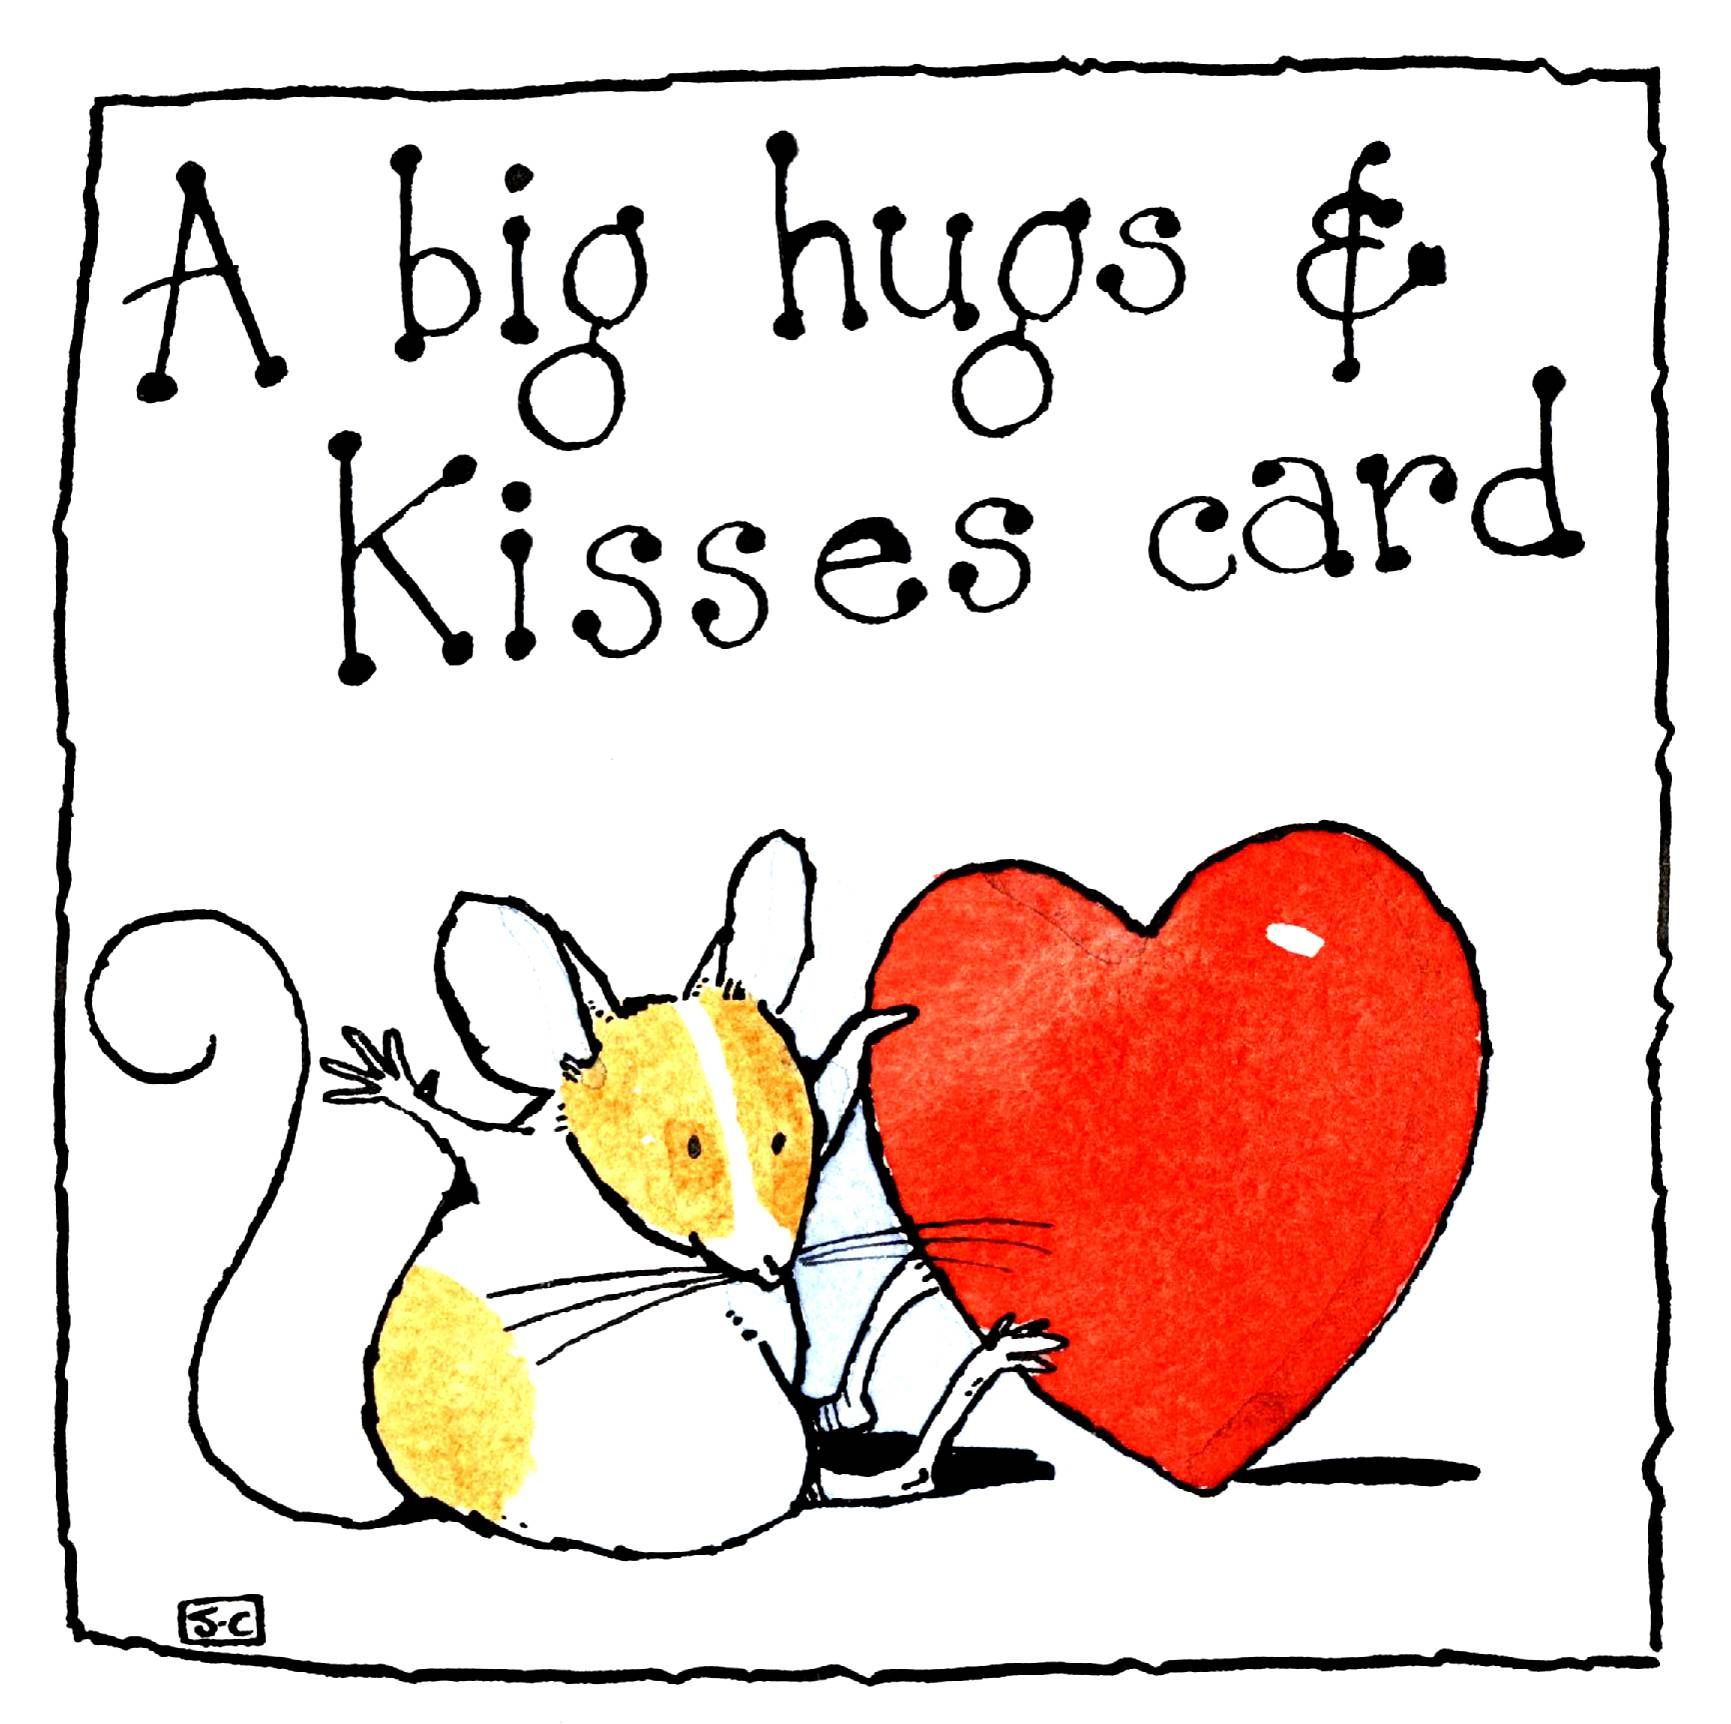 All occasion card with a cartoon mouse with red heart with caption A Big Hugs & Kisses Card